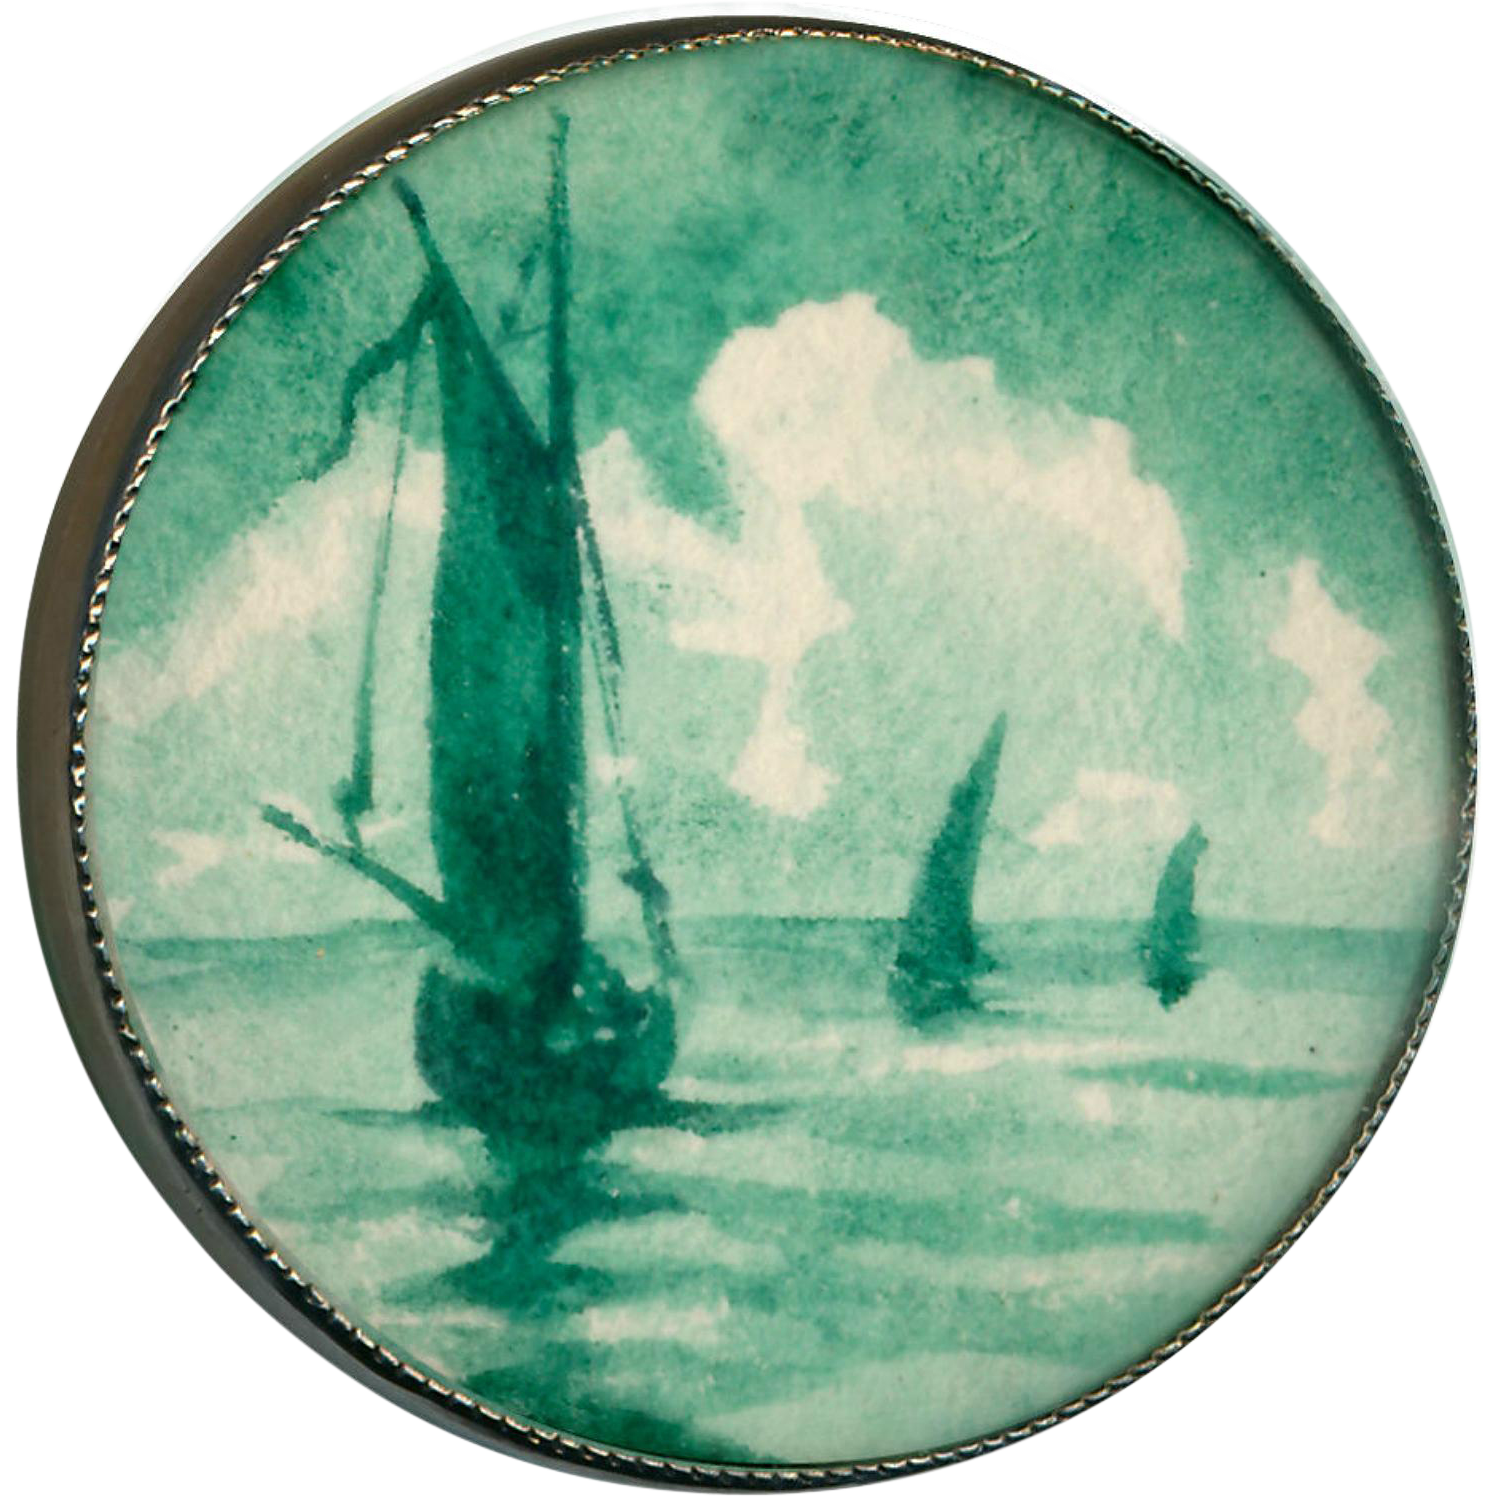 Button--Large Early 20th C. Monochrome Watercolor of Sailboats Under Glass in Silver